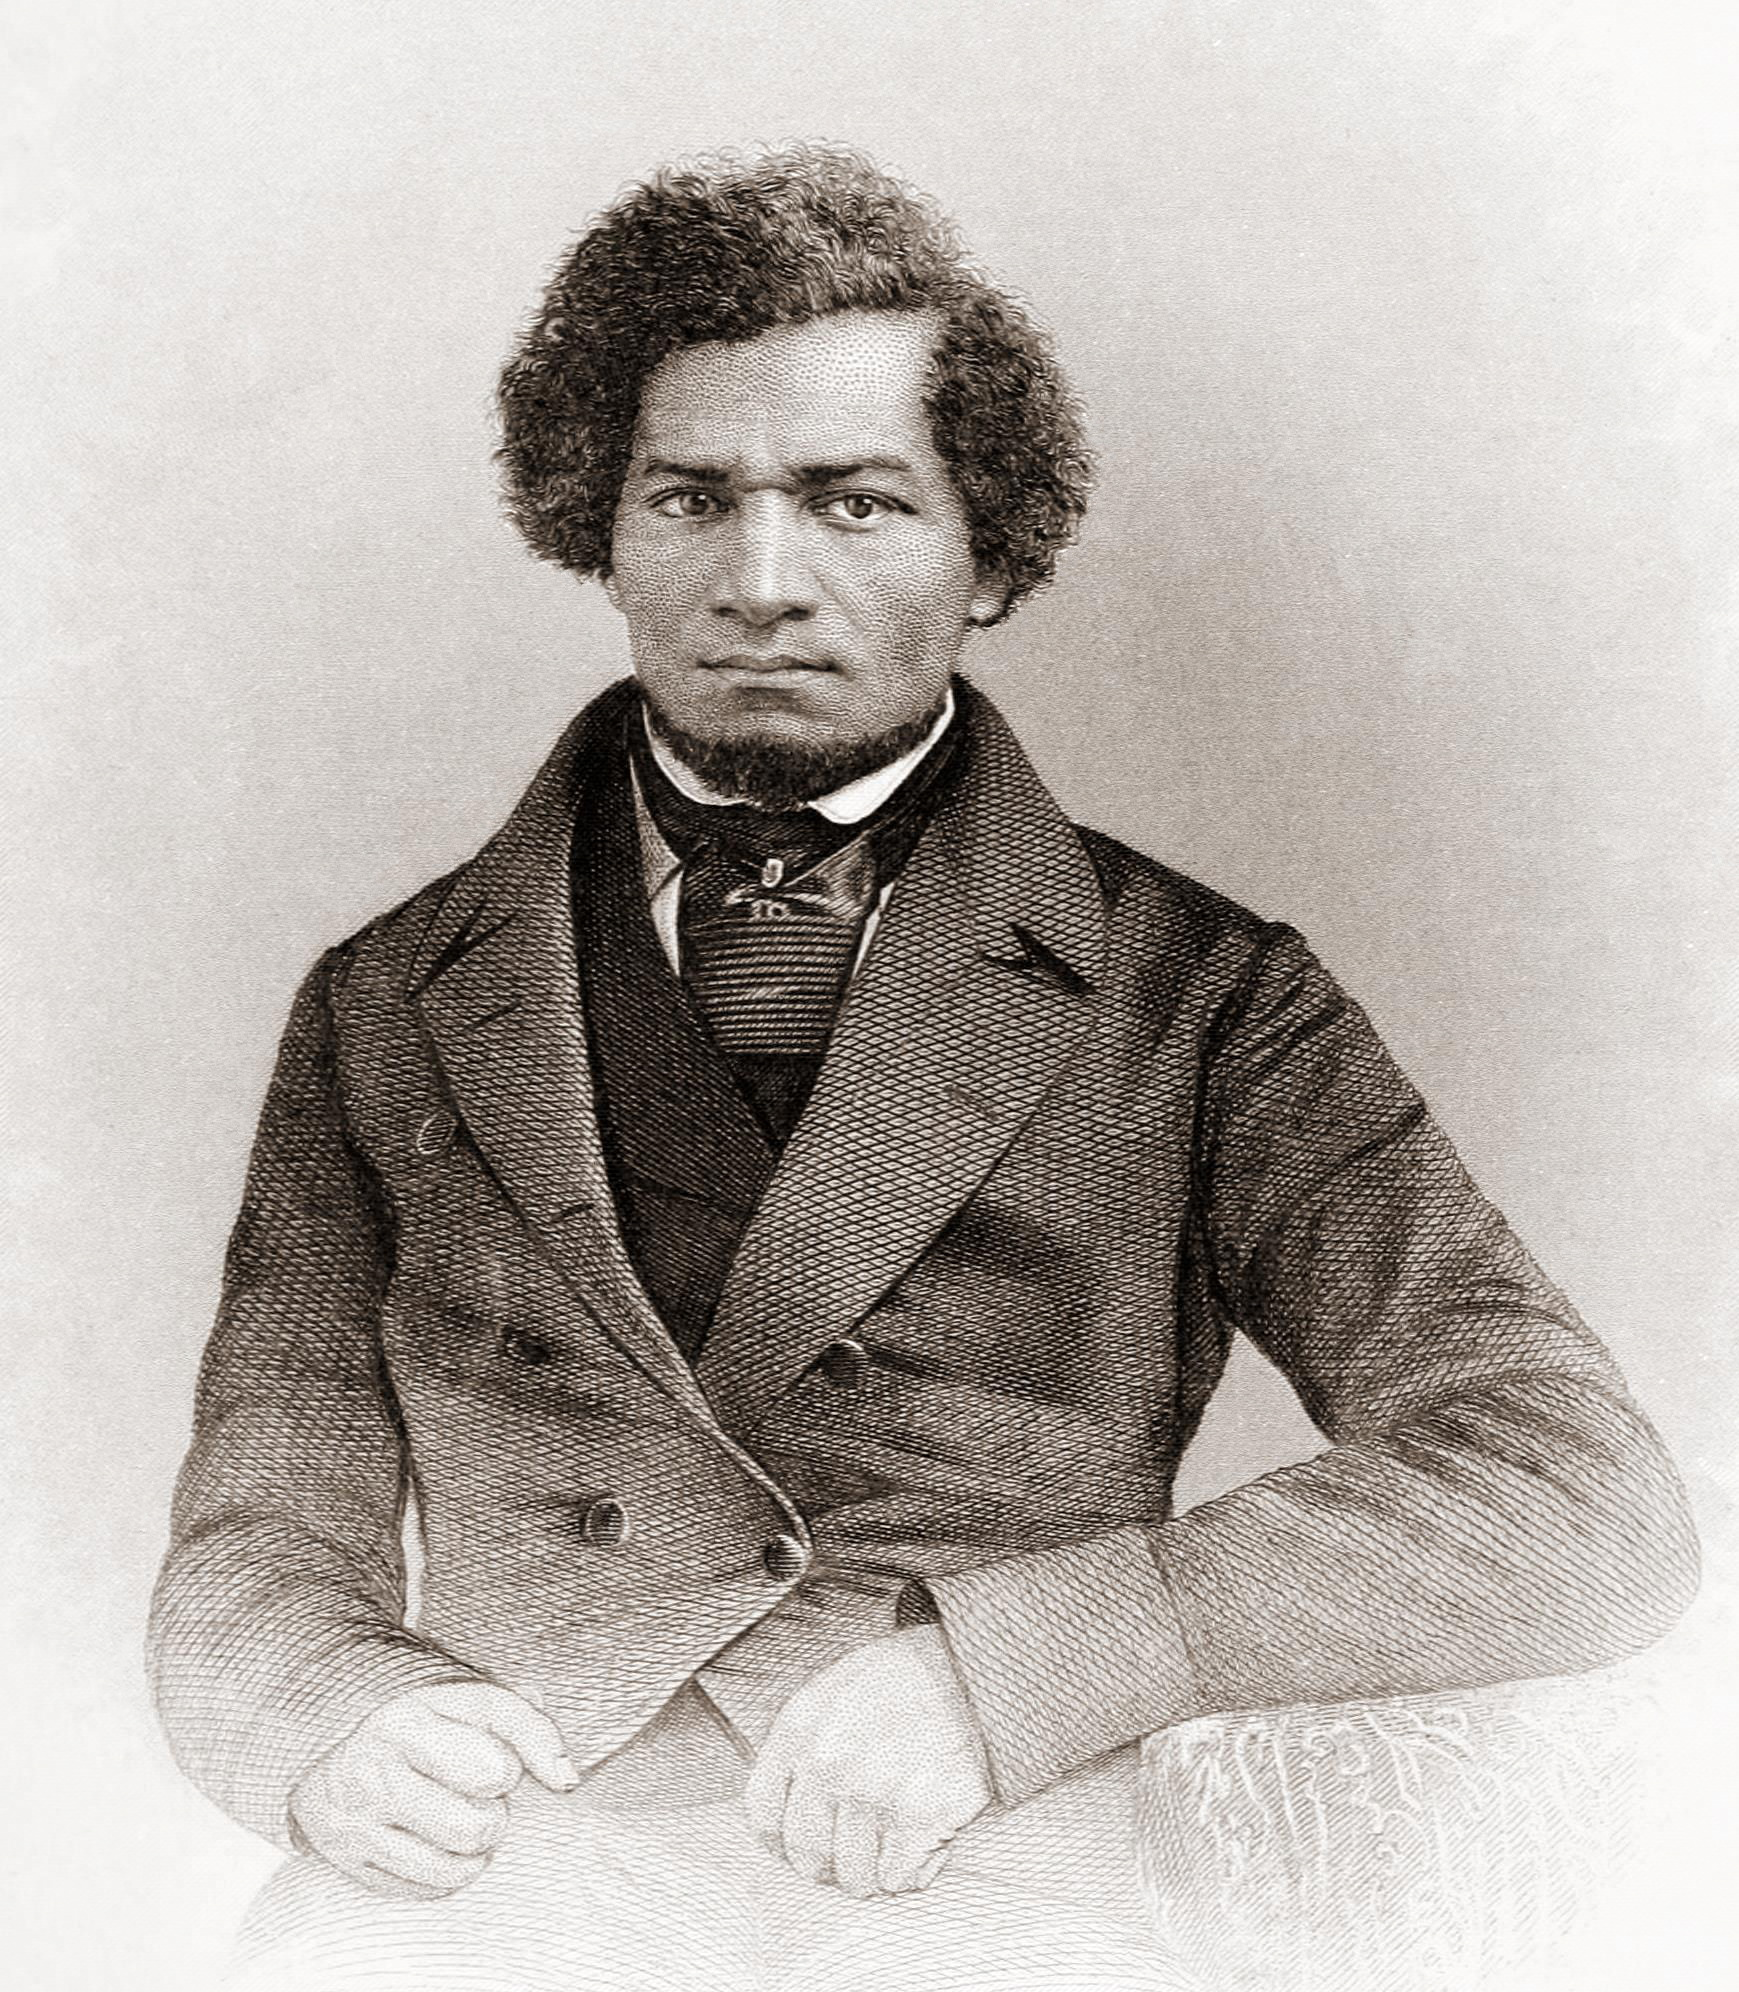 frederick douglass and his desire for liberation American community: the recovery legacies of frederick douglass and malcolm x counselor, 7(5), 53-58 addiction in the african american community: framework of liberation and personal/cultural survival to be personally and.